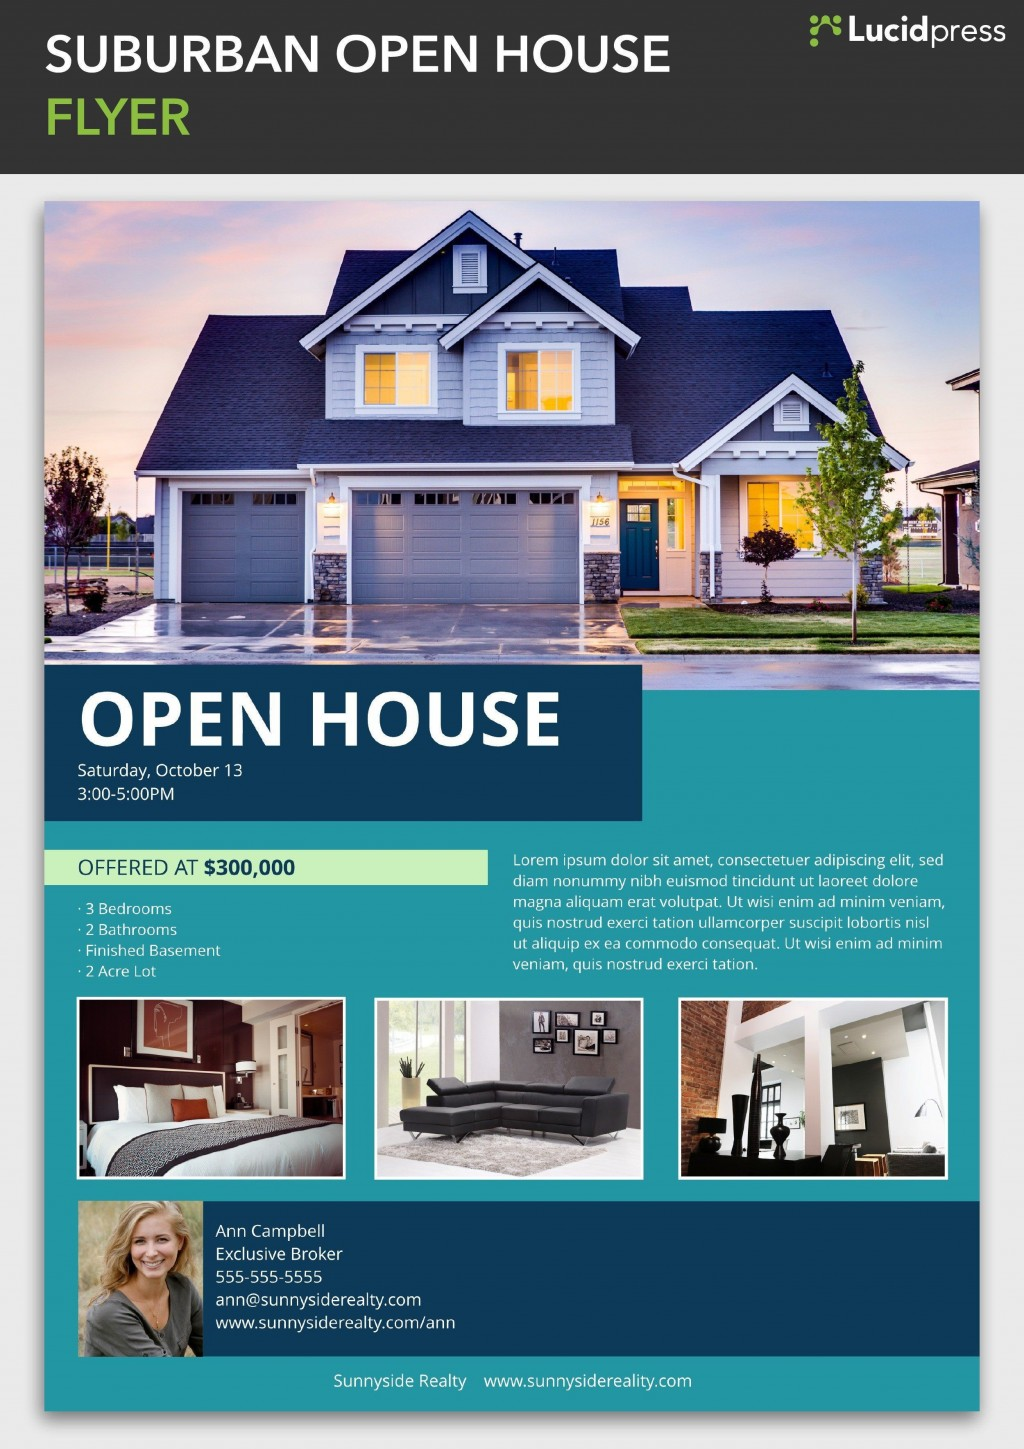 002 Magnificent Open House Flyer Template High Def  Templates Word Free Microsoft Real EstateLarge